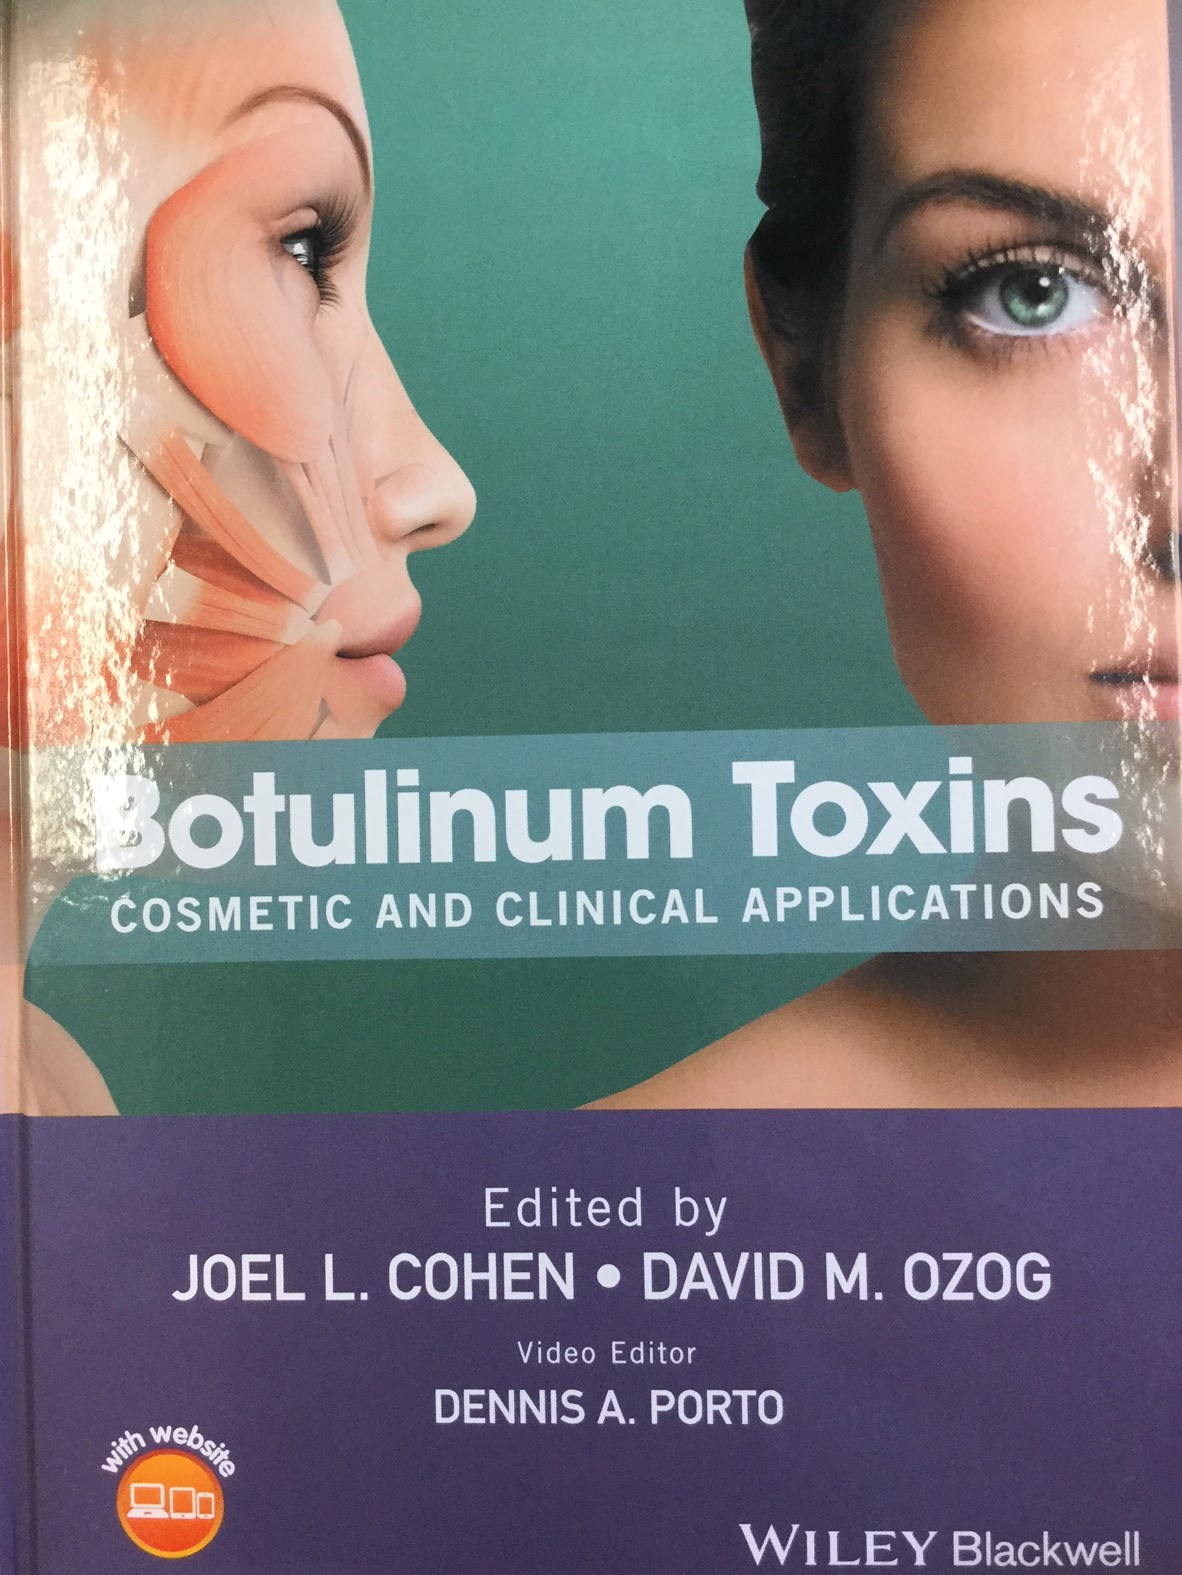 Donna Bilu Martin, MD co-authored a chapter in a textbook: Botulinum Toxins Cosmetic and Clinical Applications